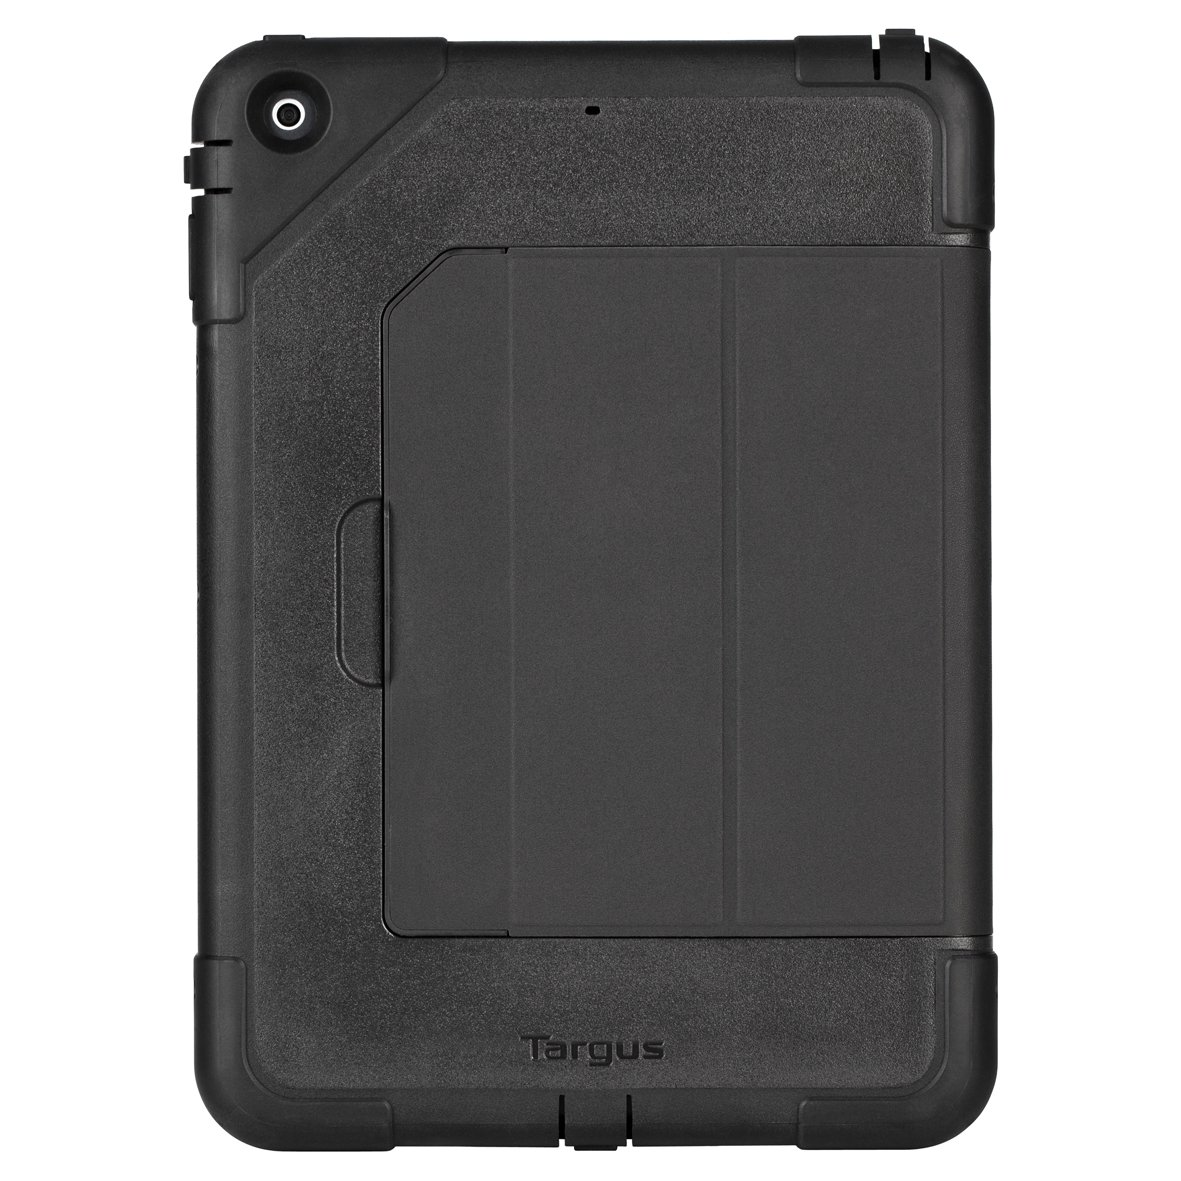 targus heavy duty protection apple ipad air with stand cover case shock tablet ebay. Black Bedroom Furniture Sets. Home Design Ideas